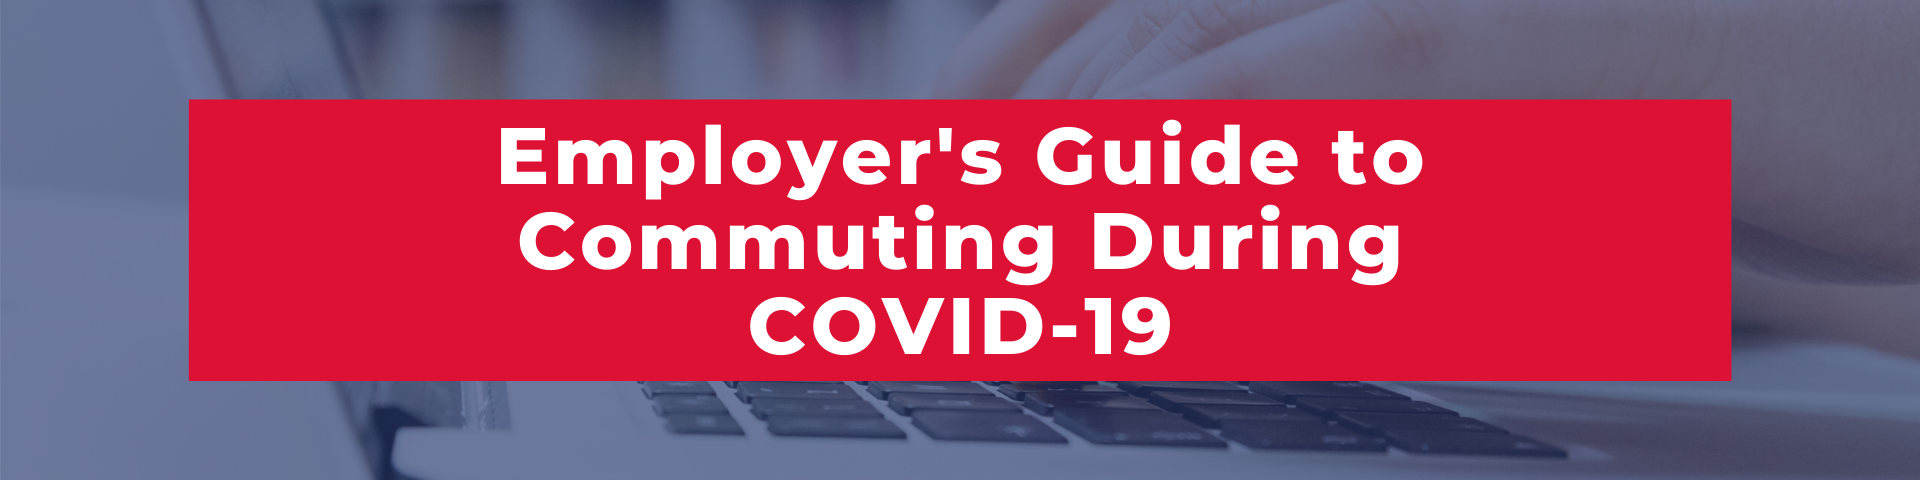 blog title banner image:  Employer's Guide to Commuting During COVID-19